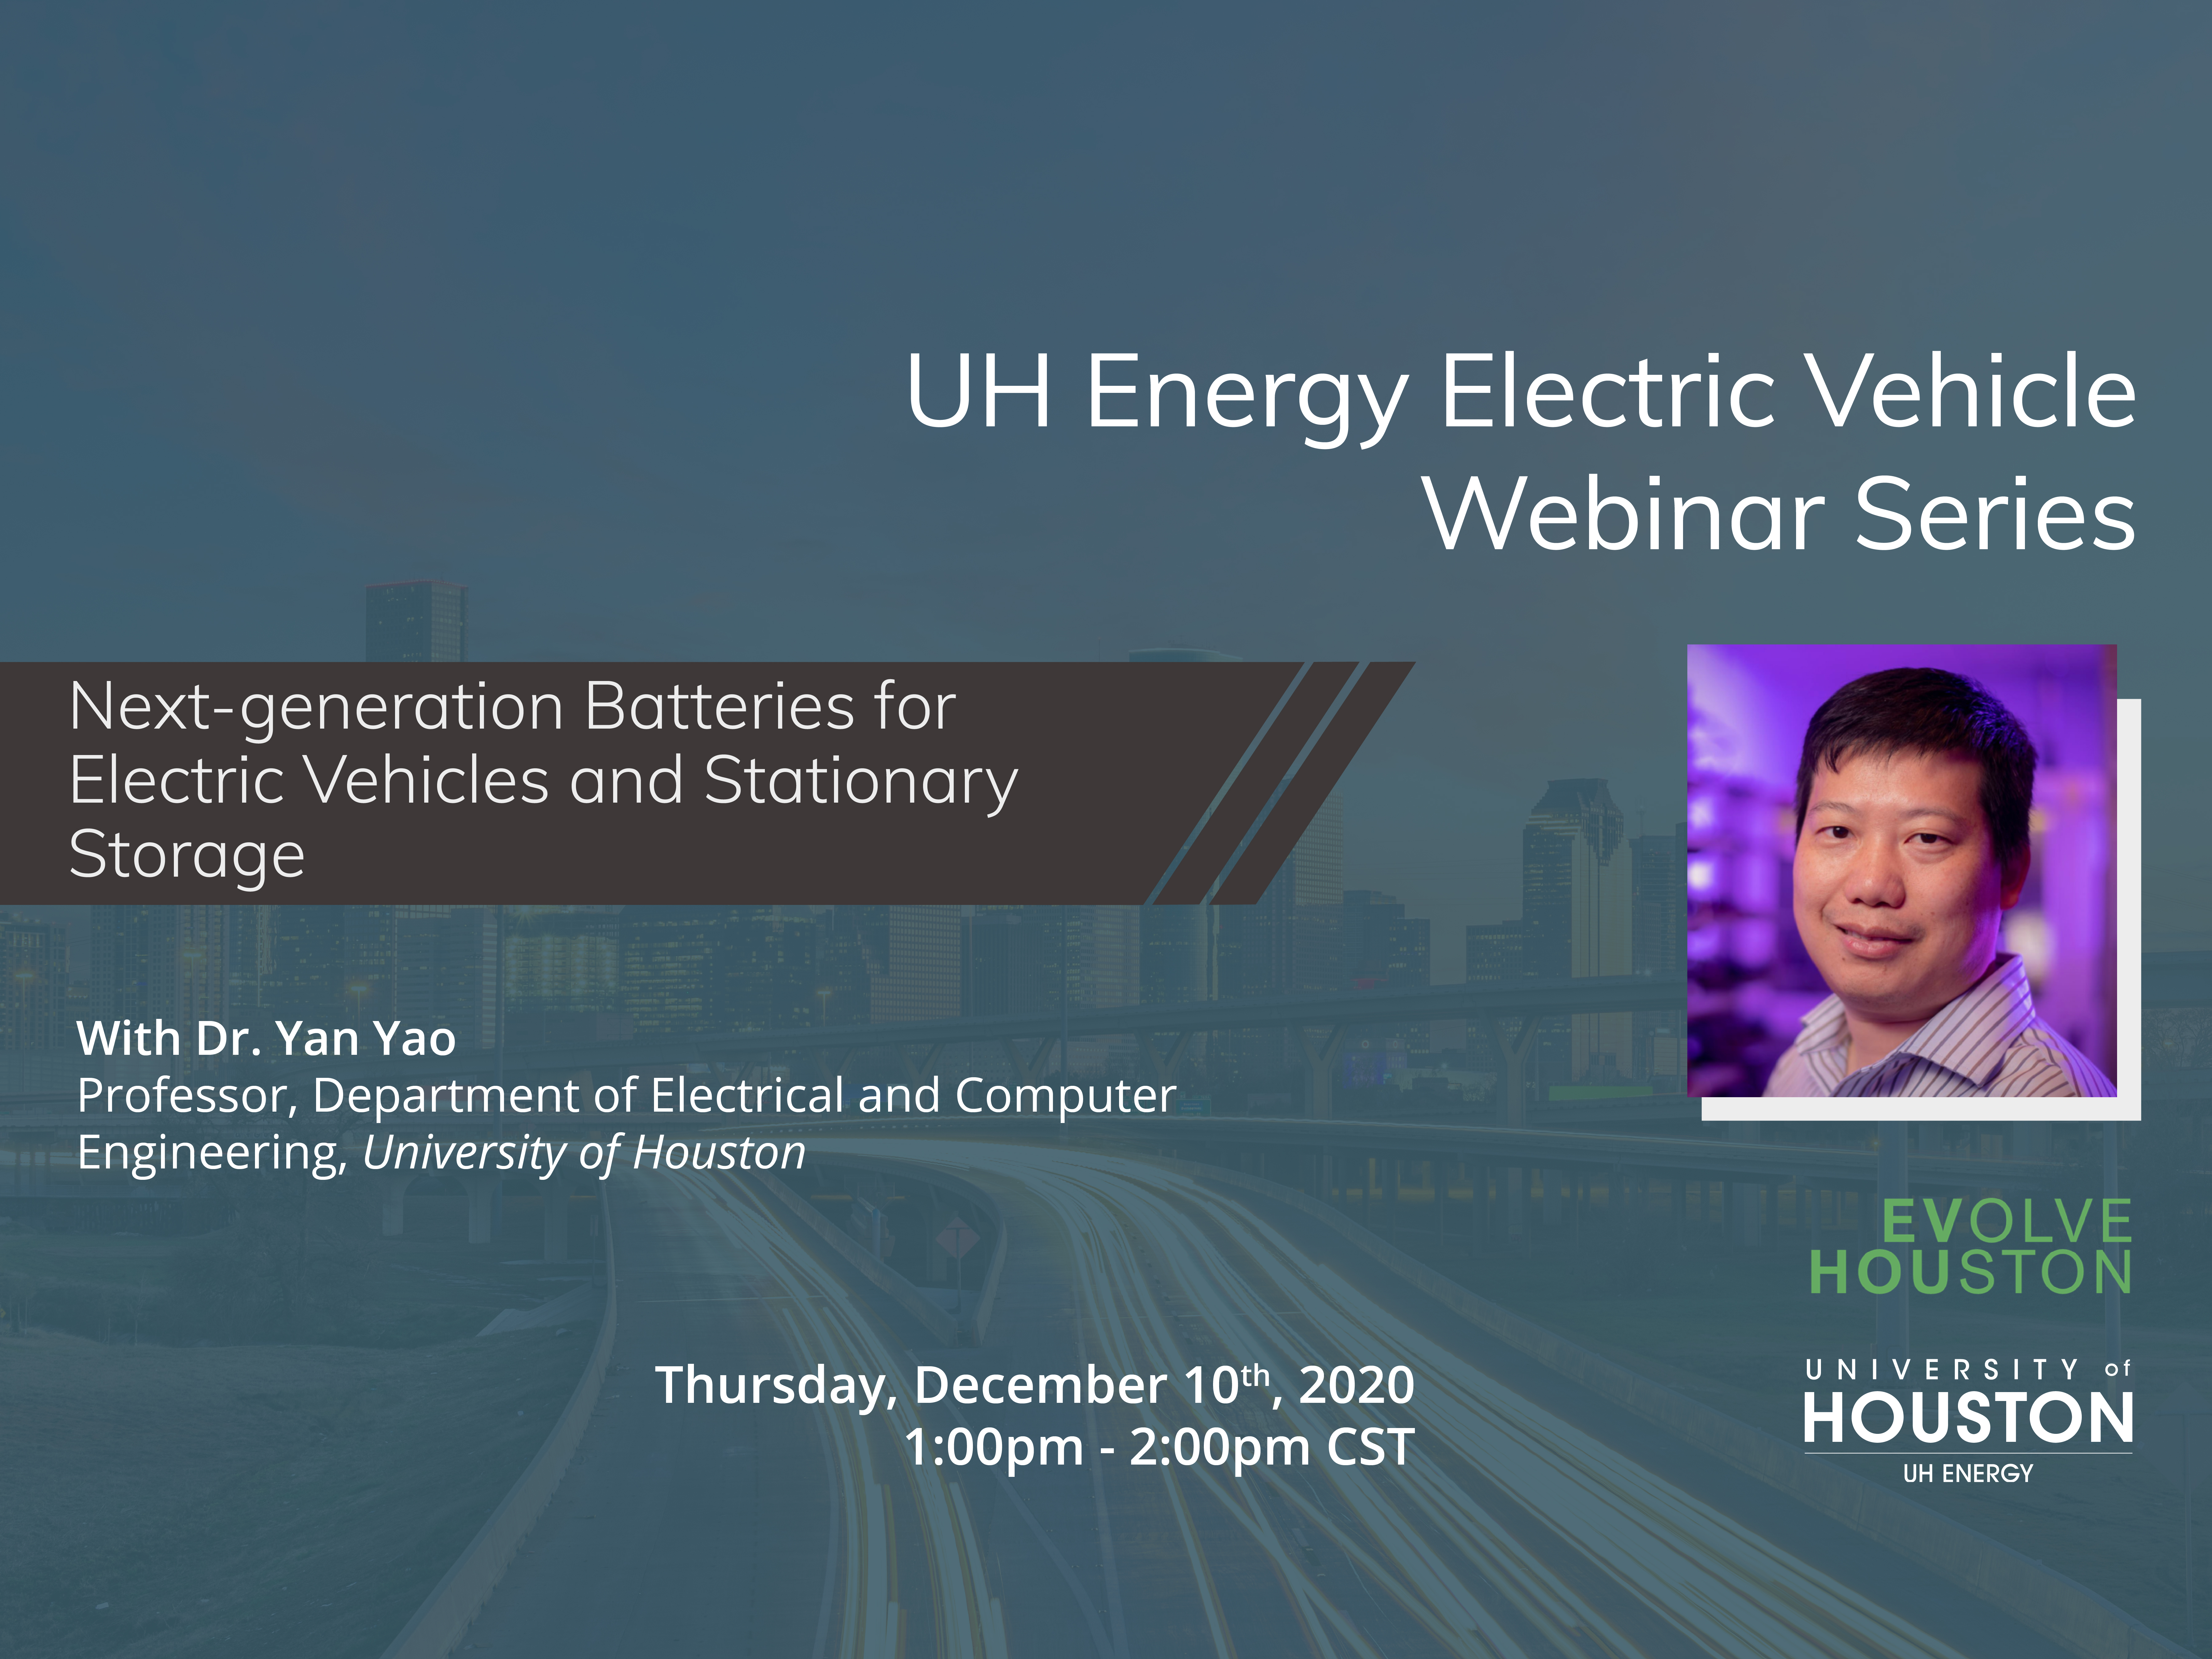 Next-generation Batteries for Electric Vehicles and Stationary Storage Image